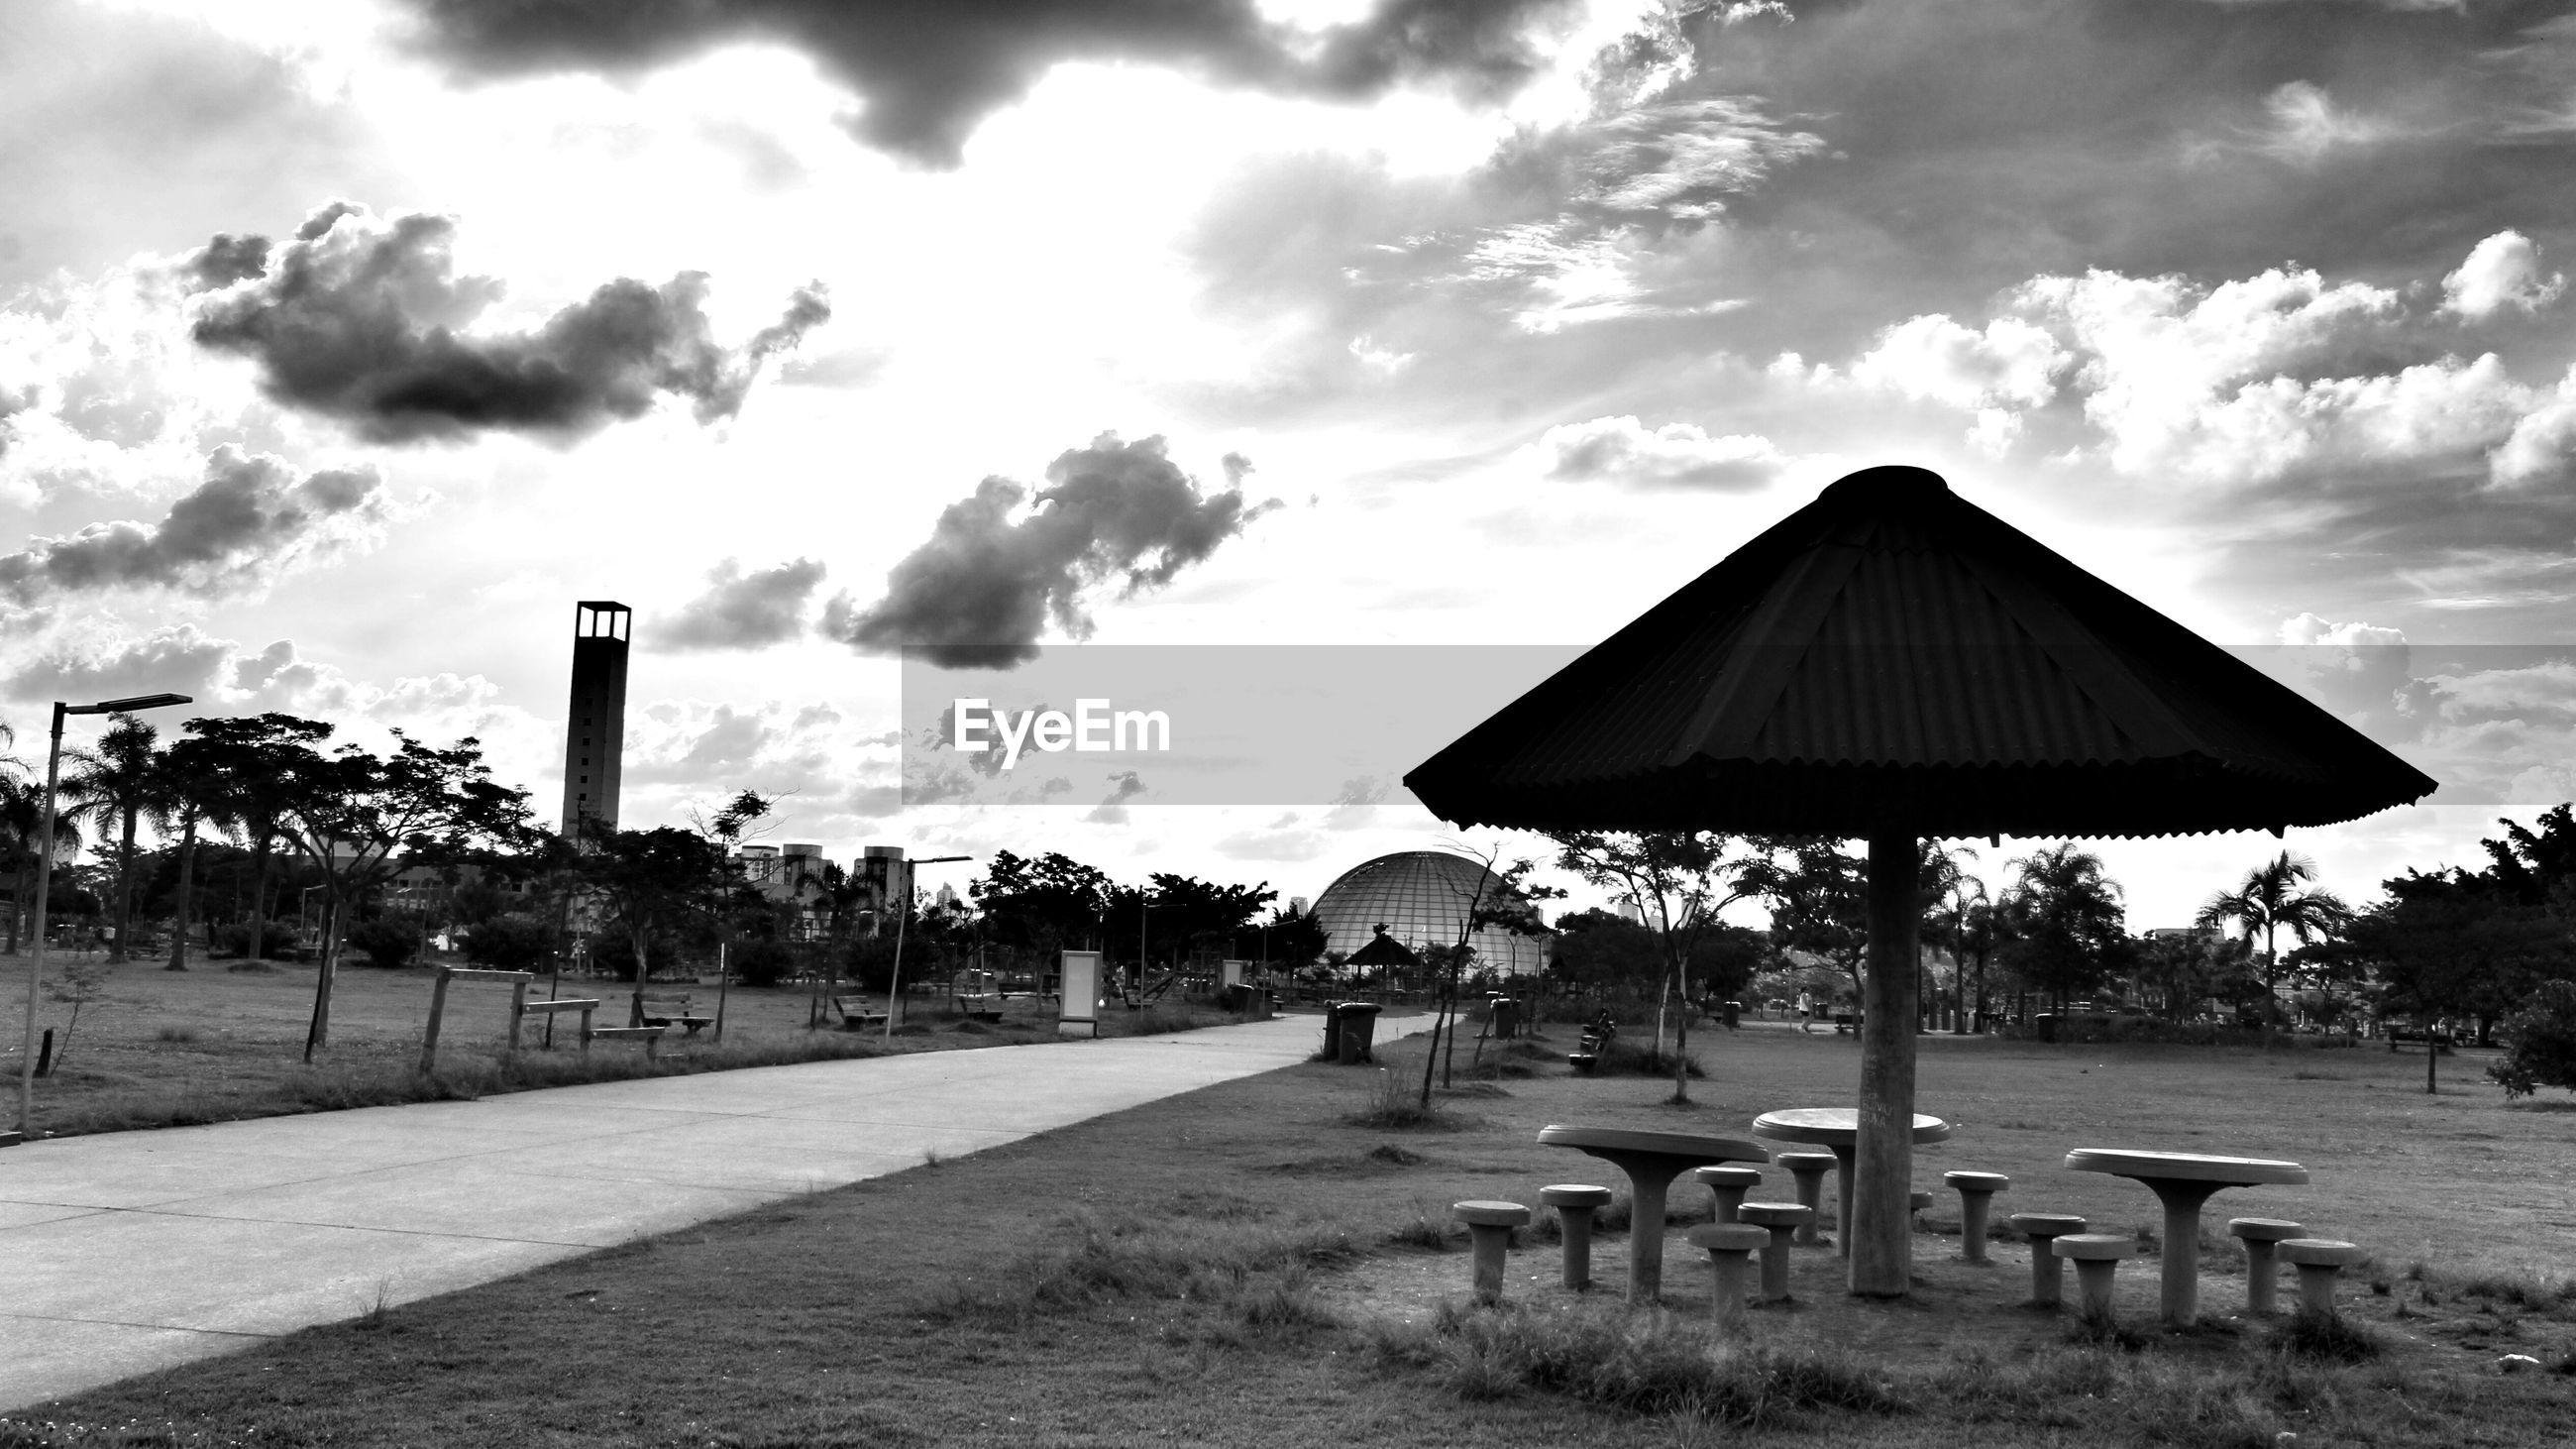 cloud - sky, sky, nature, no people, day, tree, land, plant, outdoors, architecture, seat, built structure, chair, absence, beauty in nature, field, sunlight, overcast, tranquil scene